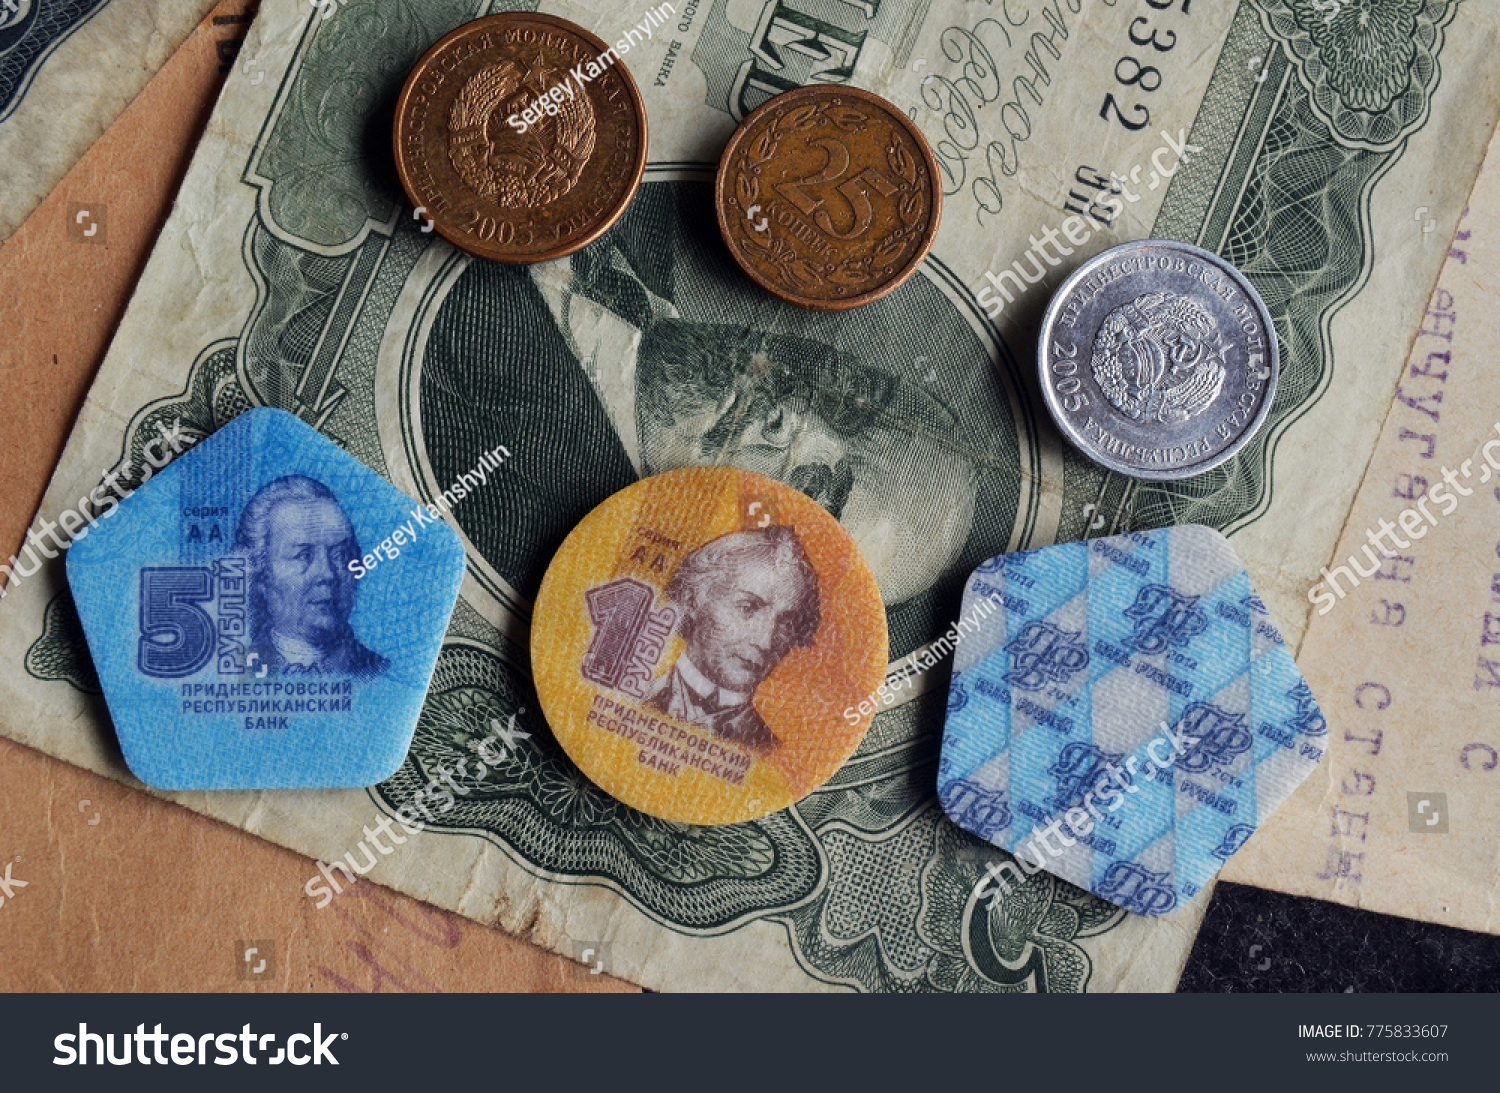 Banknotes and coins of Transnistria. Interesting facts about the currency of the PMR 75